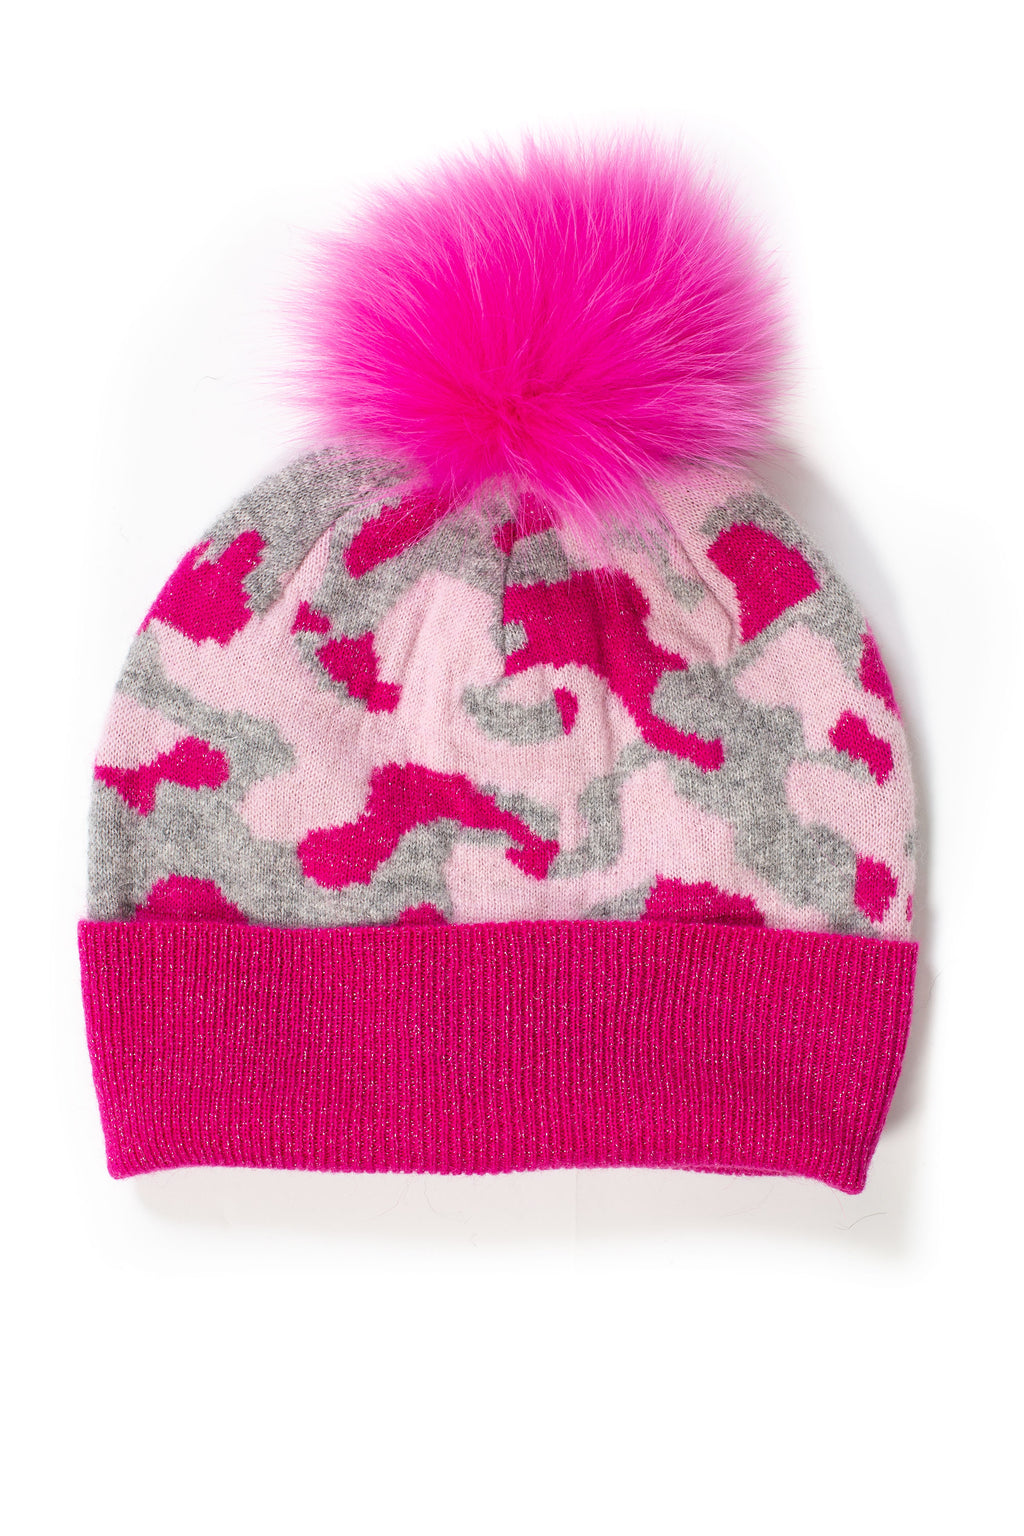 Camo Hat with Fur Pom Pom